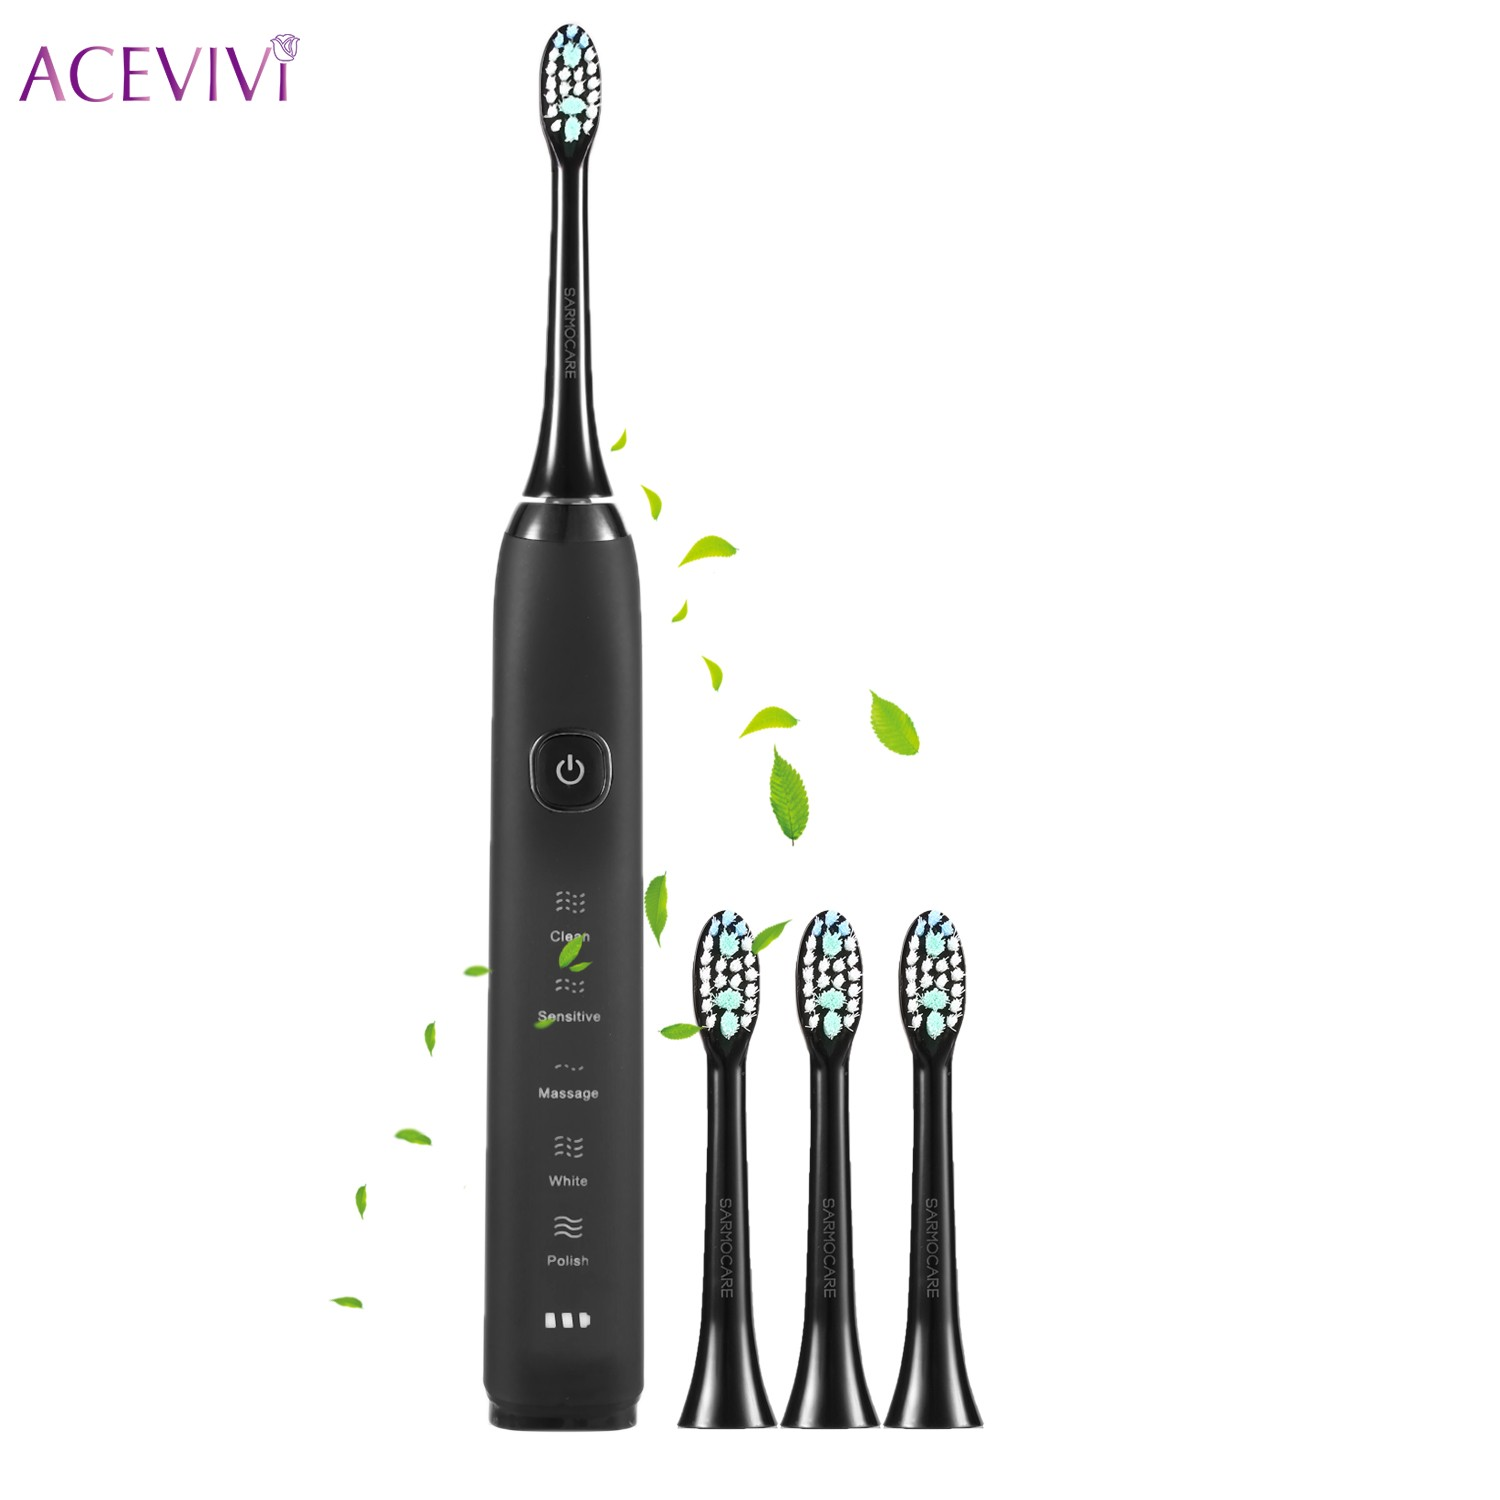 ACEVIVI Ultrasonic Sonic Electric Toothbrush USB Charge Rechargeable Tooth Brushes With Heads